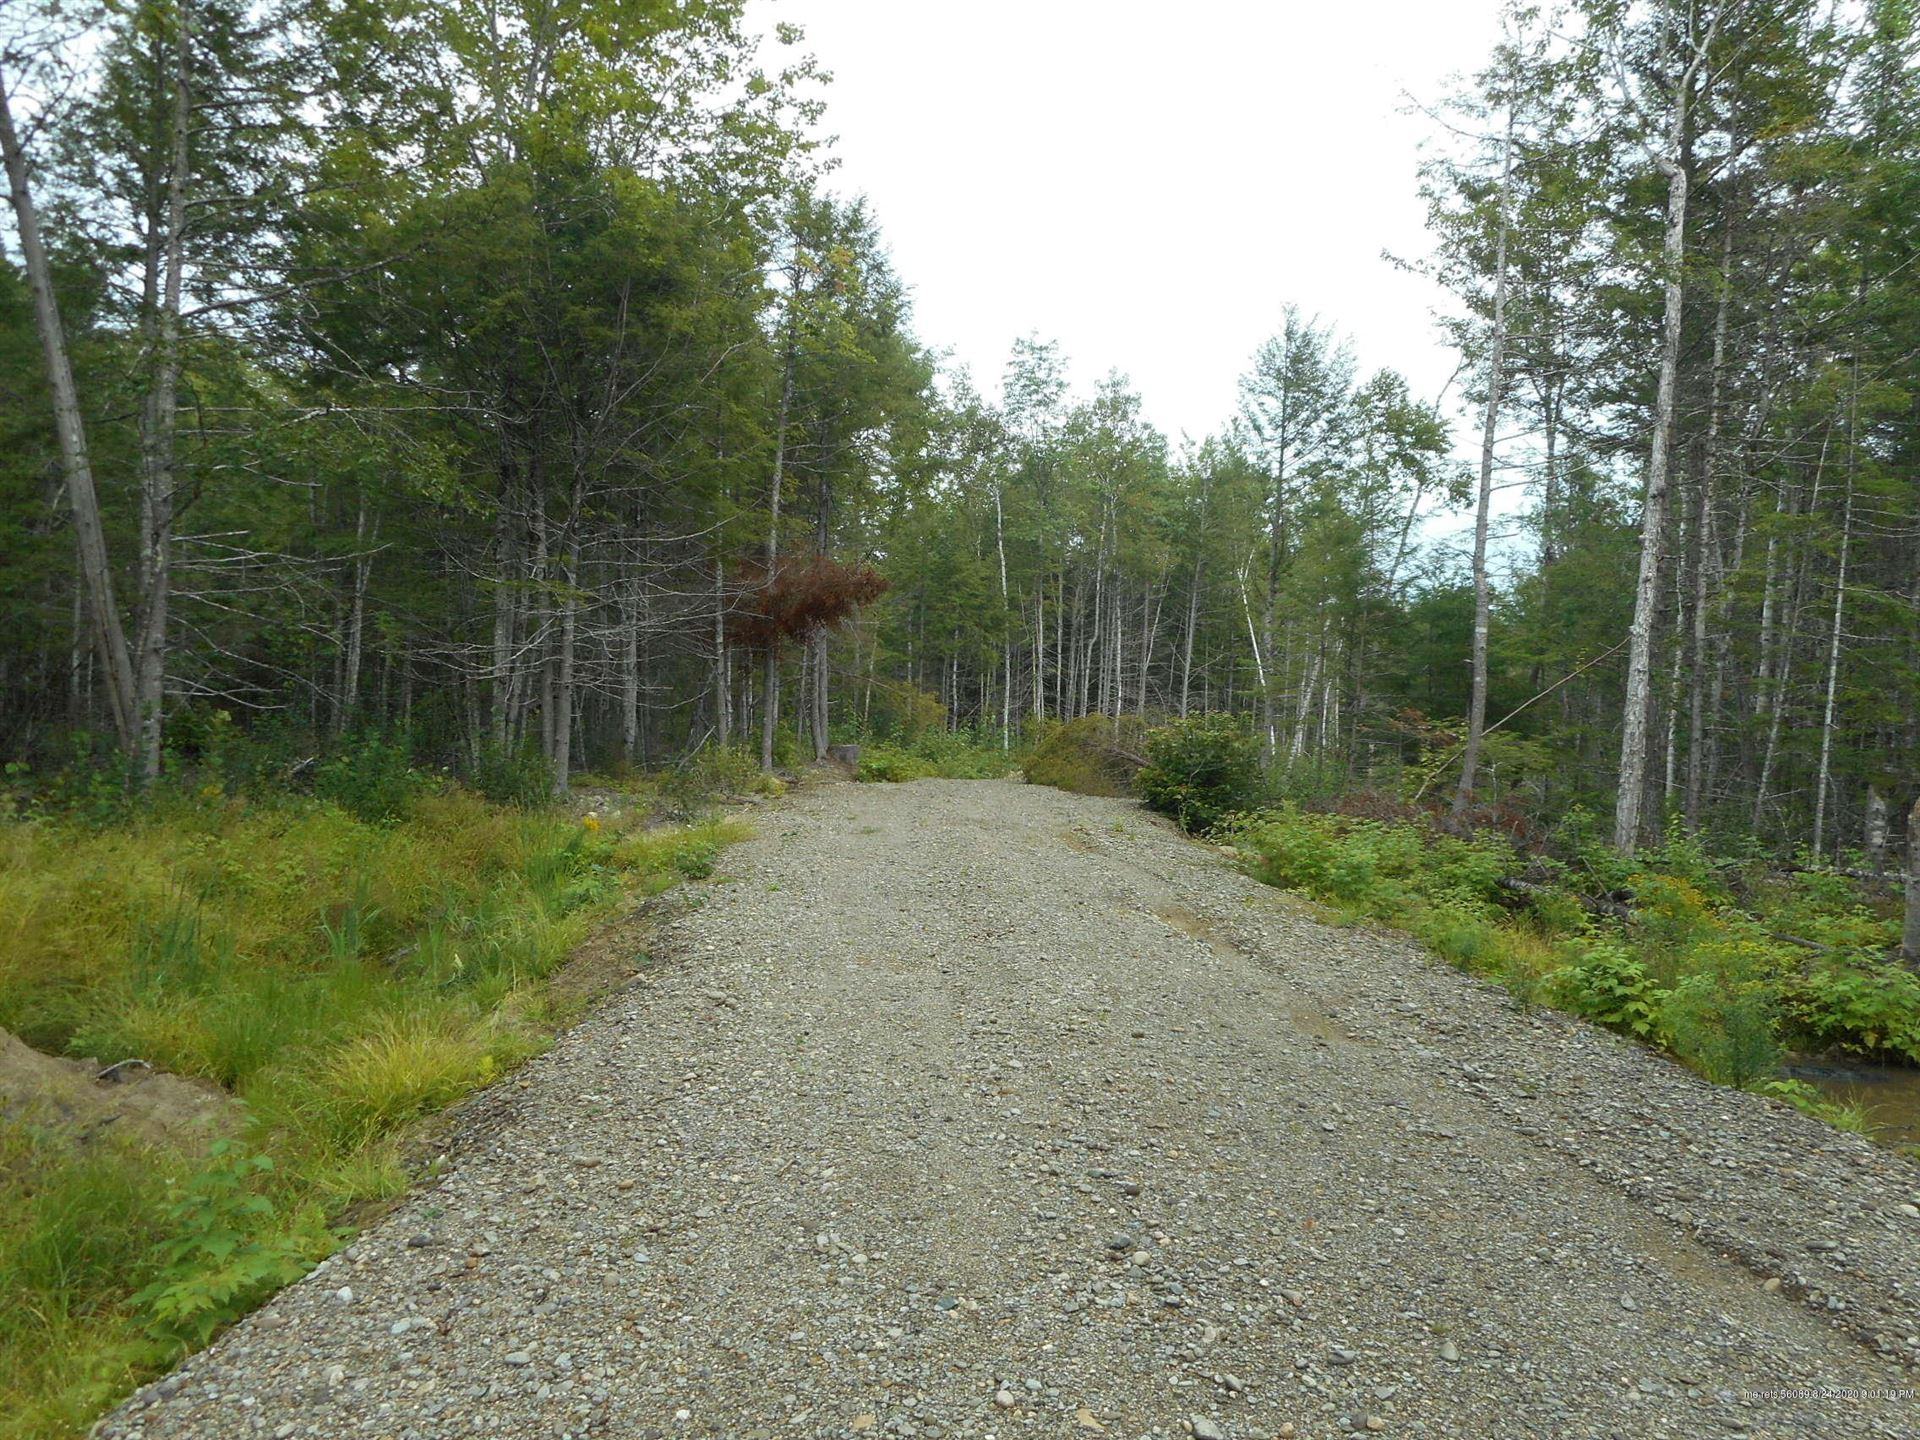 Photo of Lot 8-31 Keene Road, Chester, ME 04457 (MLS # 1459303)